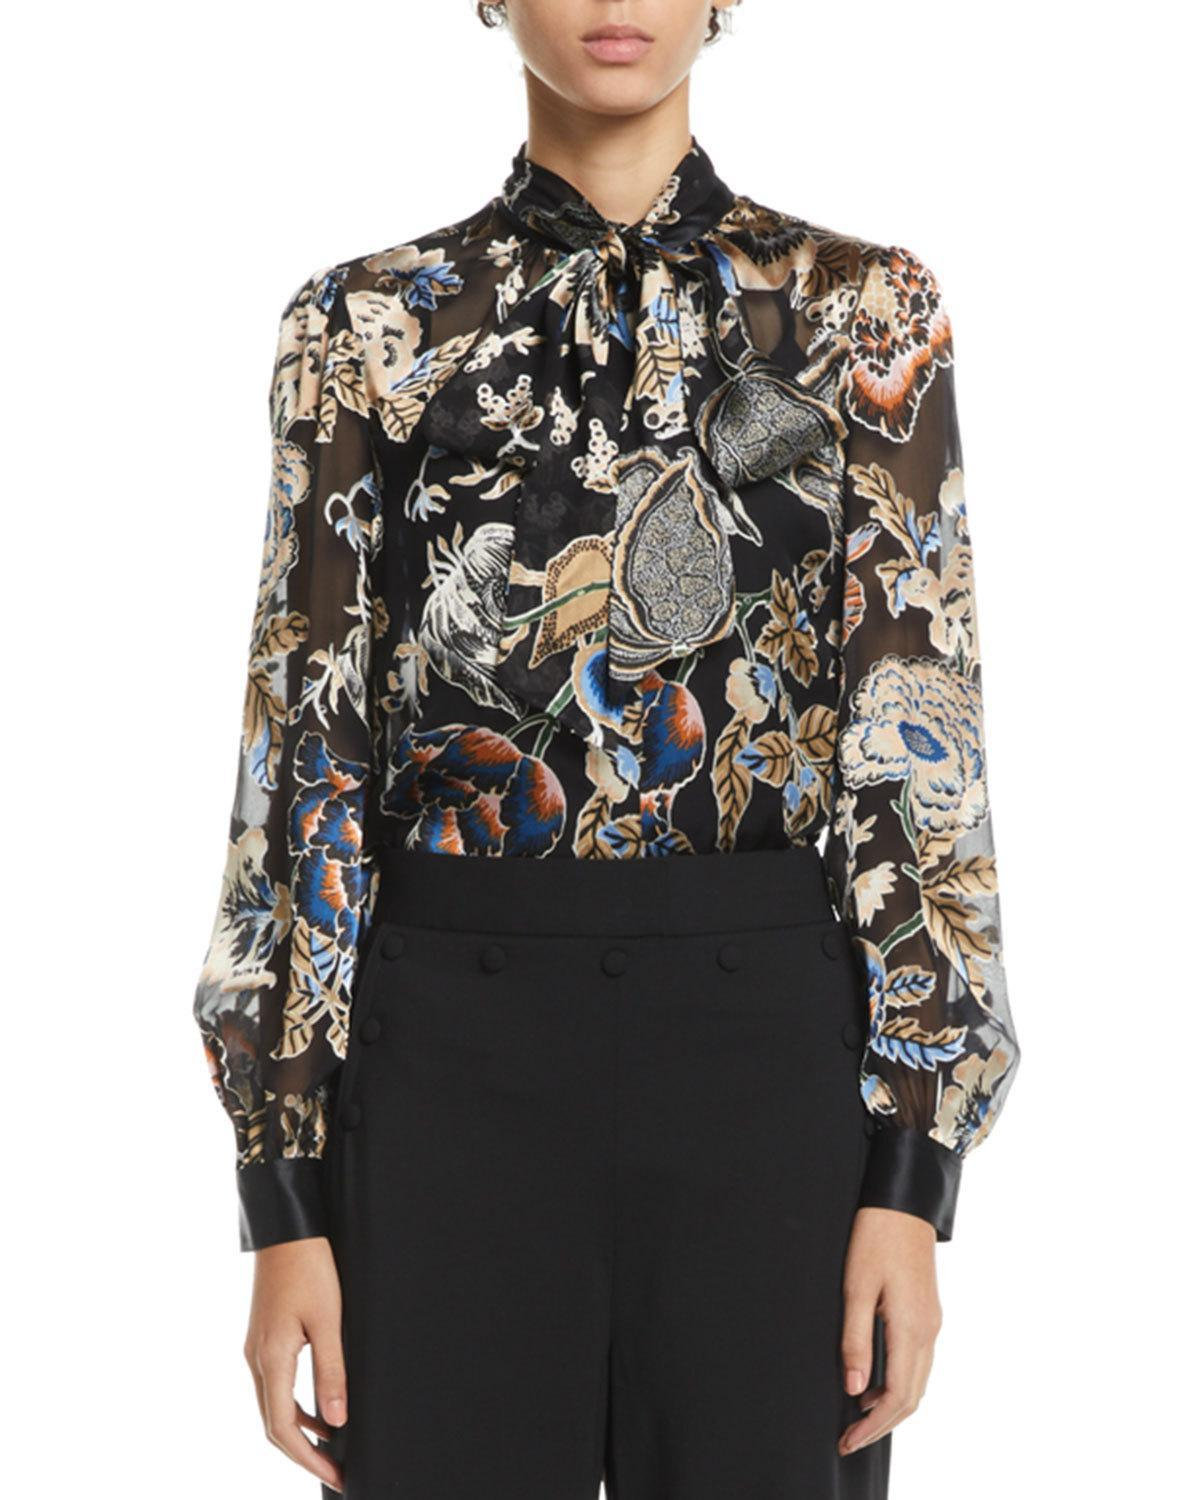 a7a8f89f53ed Tory Burch Floral Satin Burnout Tie-Neck Blouse In Midnight Happy Times